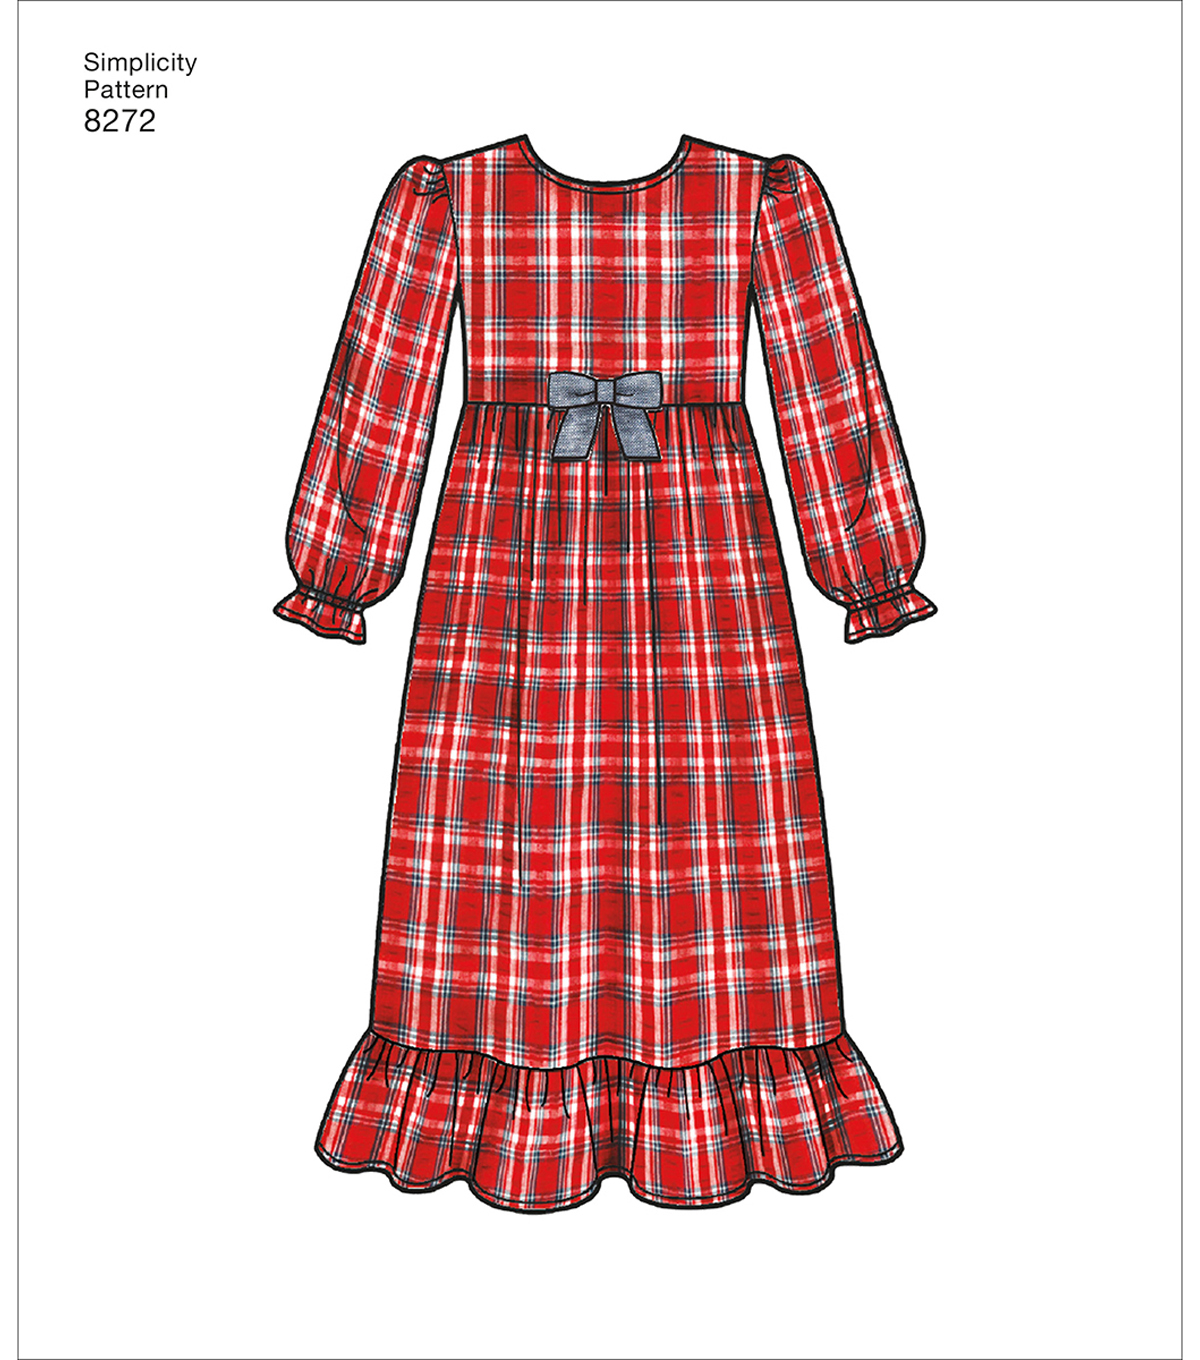 Simplicity Pattern 8272 Children\u0027s/Girls\u0027 Sleepwear-Size K5 (7-14)